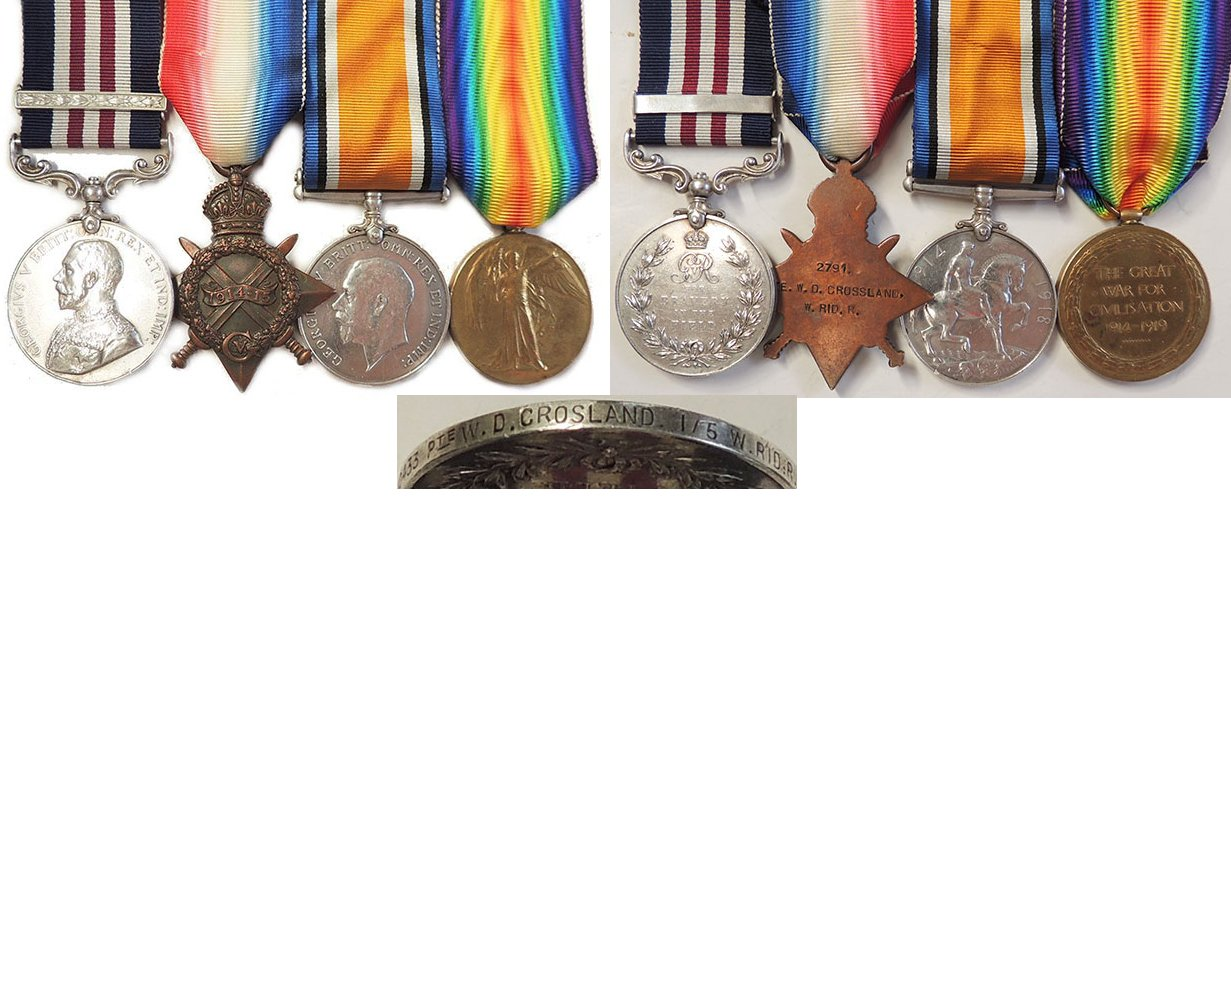 GAL017. MM & BAR WITH TRIO – Crosland, West Riding Regt.